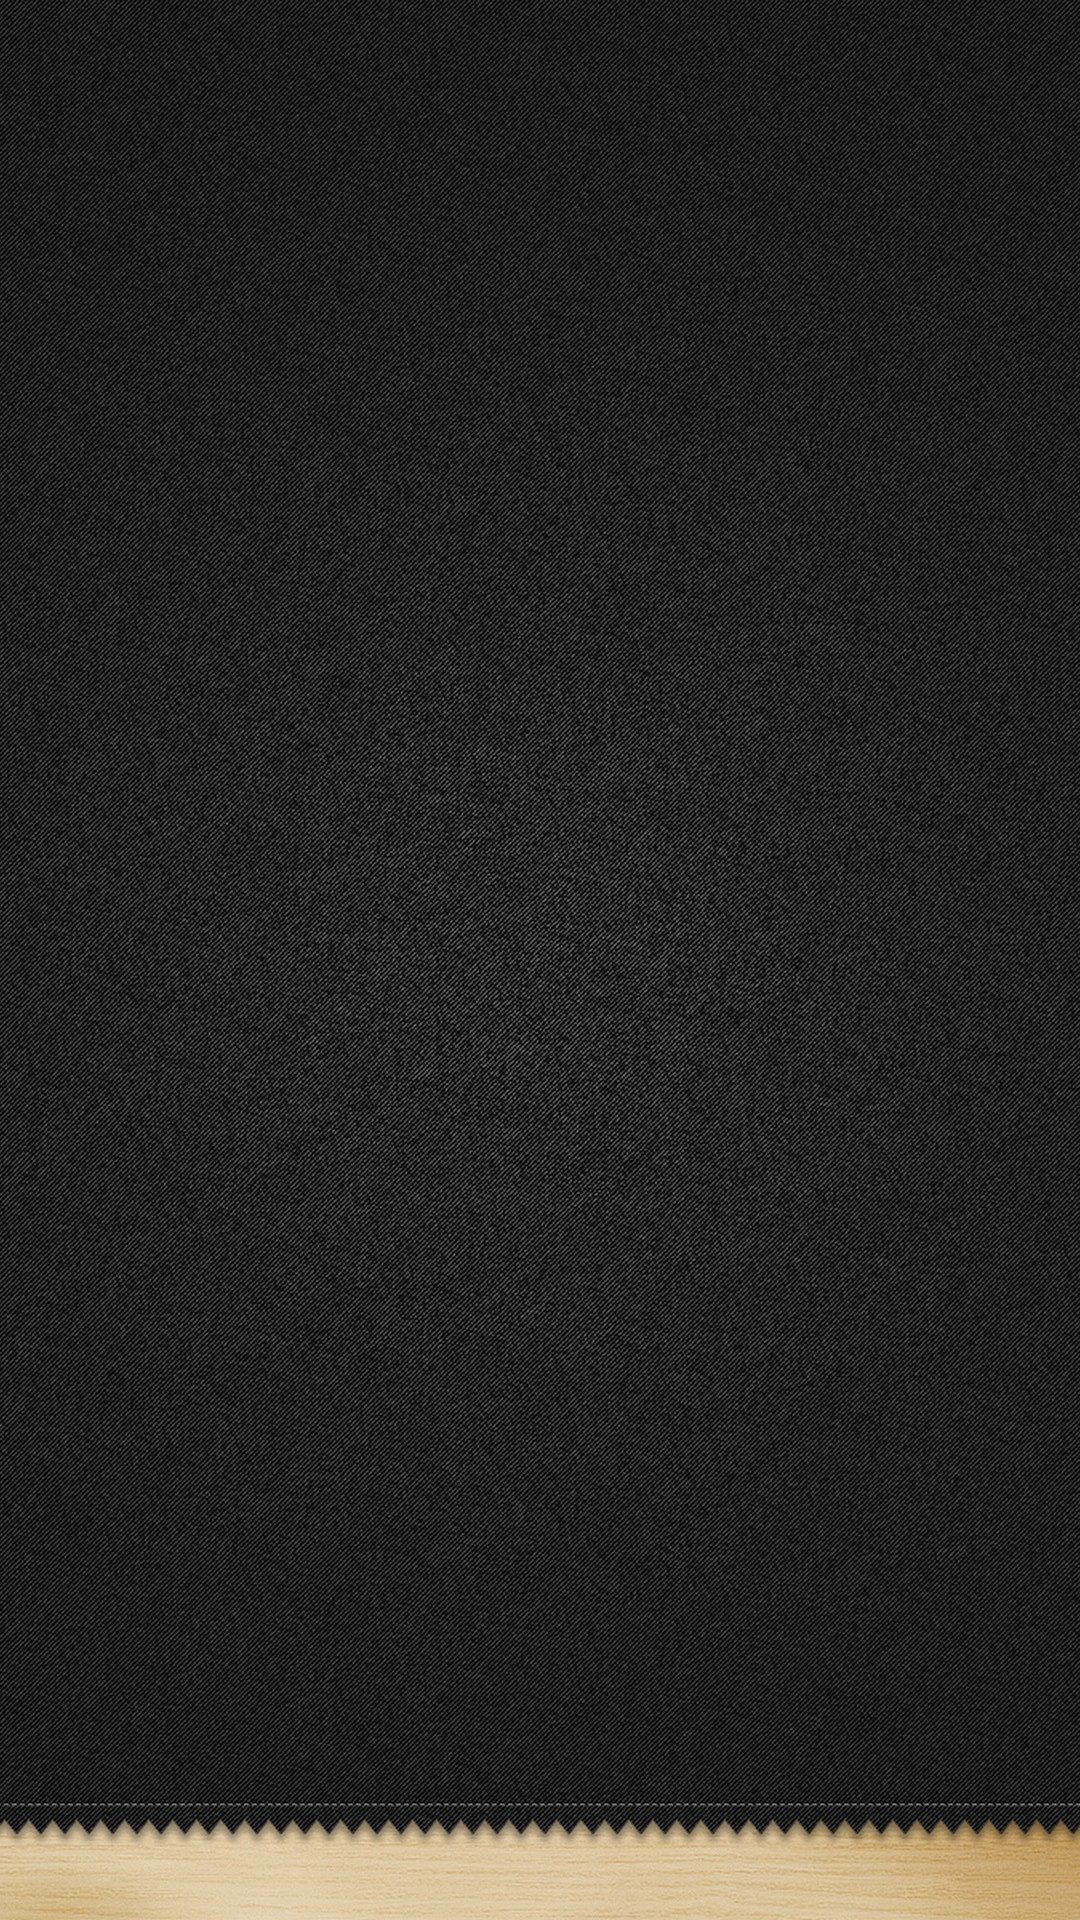 Res: 1080x1920, Clean Dark Denim Texture Android Wallpaper ...